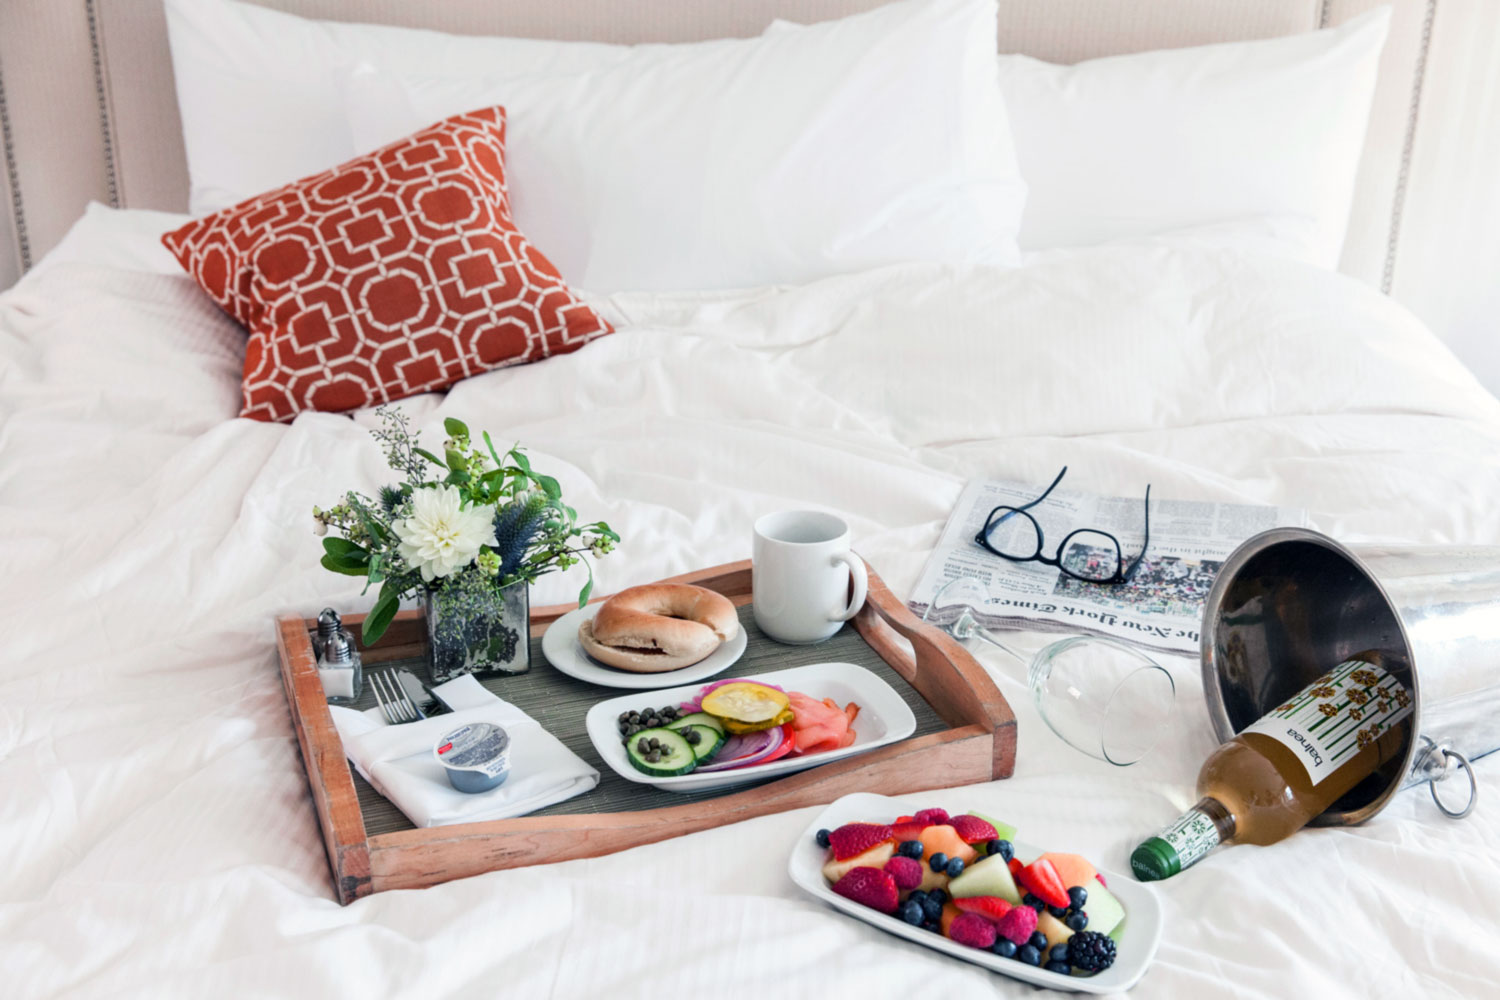 The Beds are so comfortable you may want to ensure you set an alarm or get a wake-up call - try the pillow menu and have breakfast in bed with someone special.